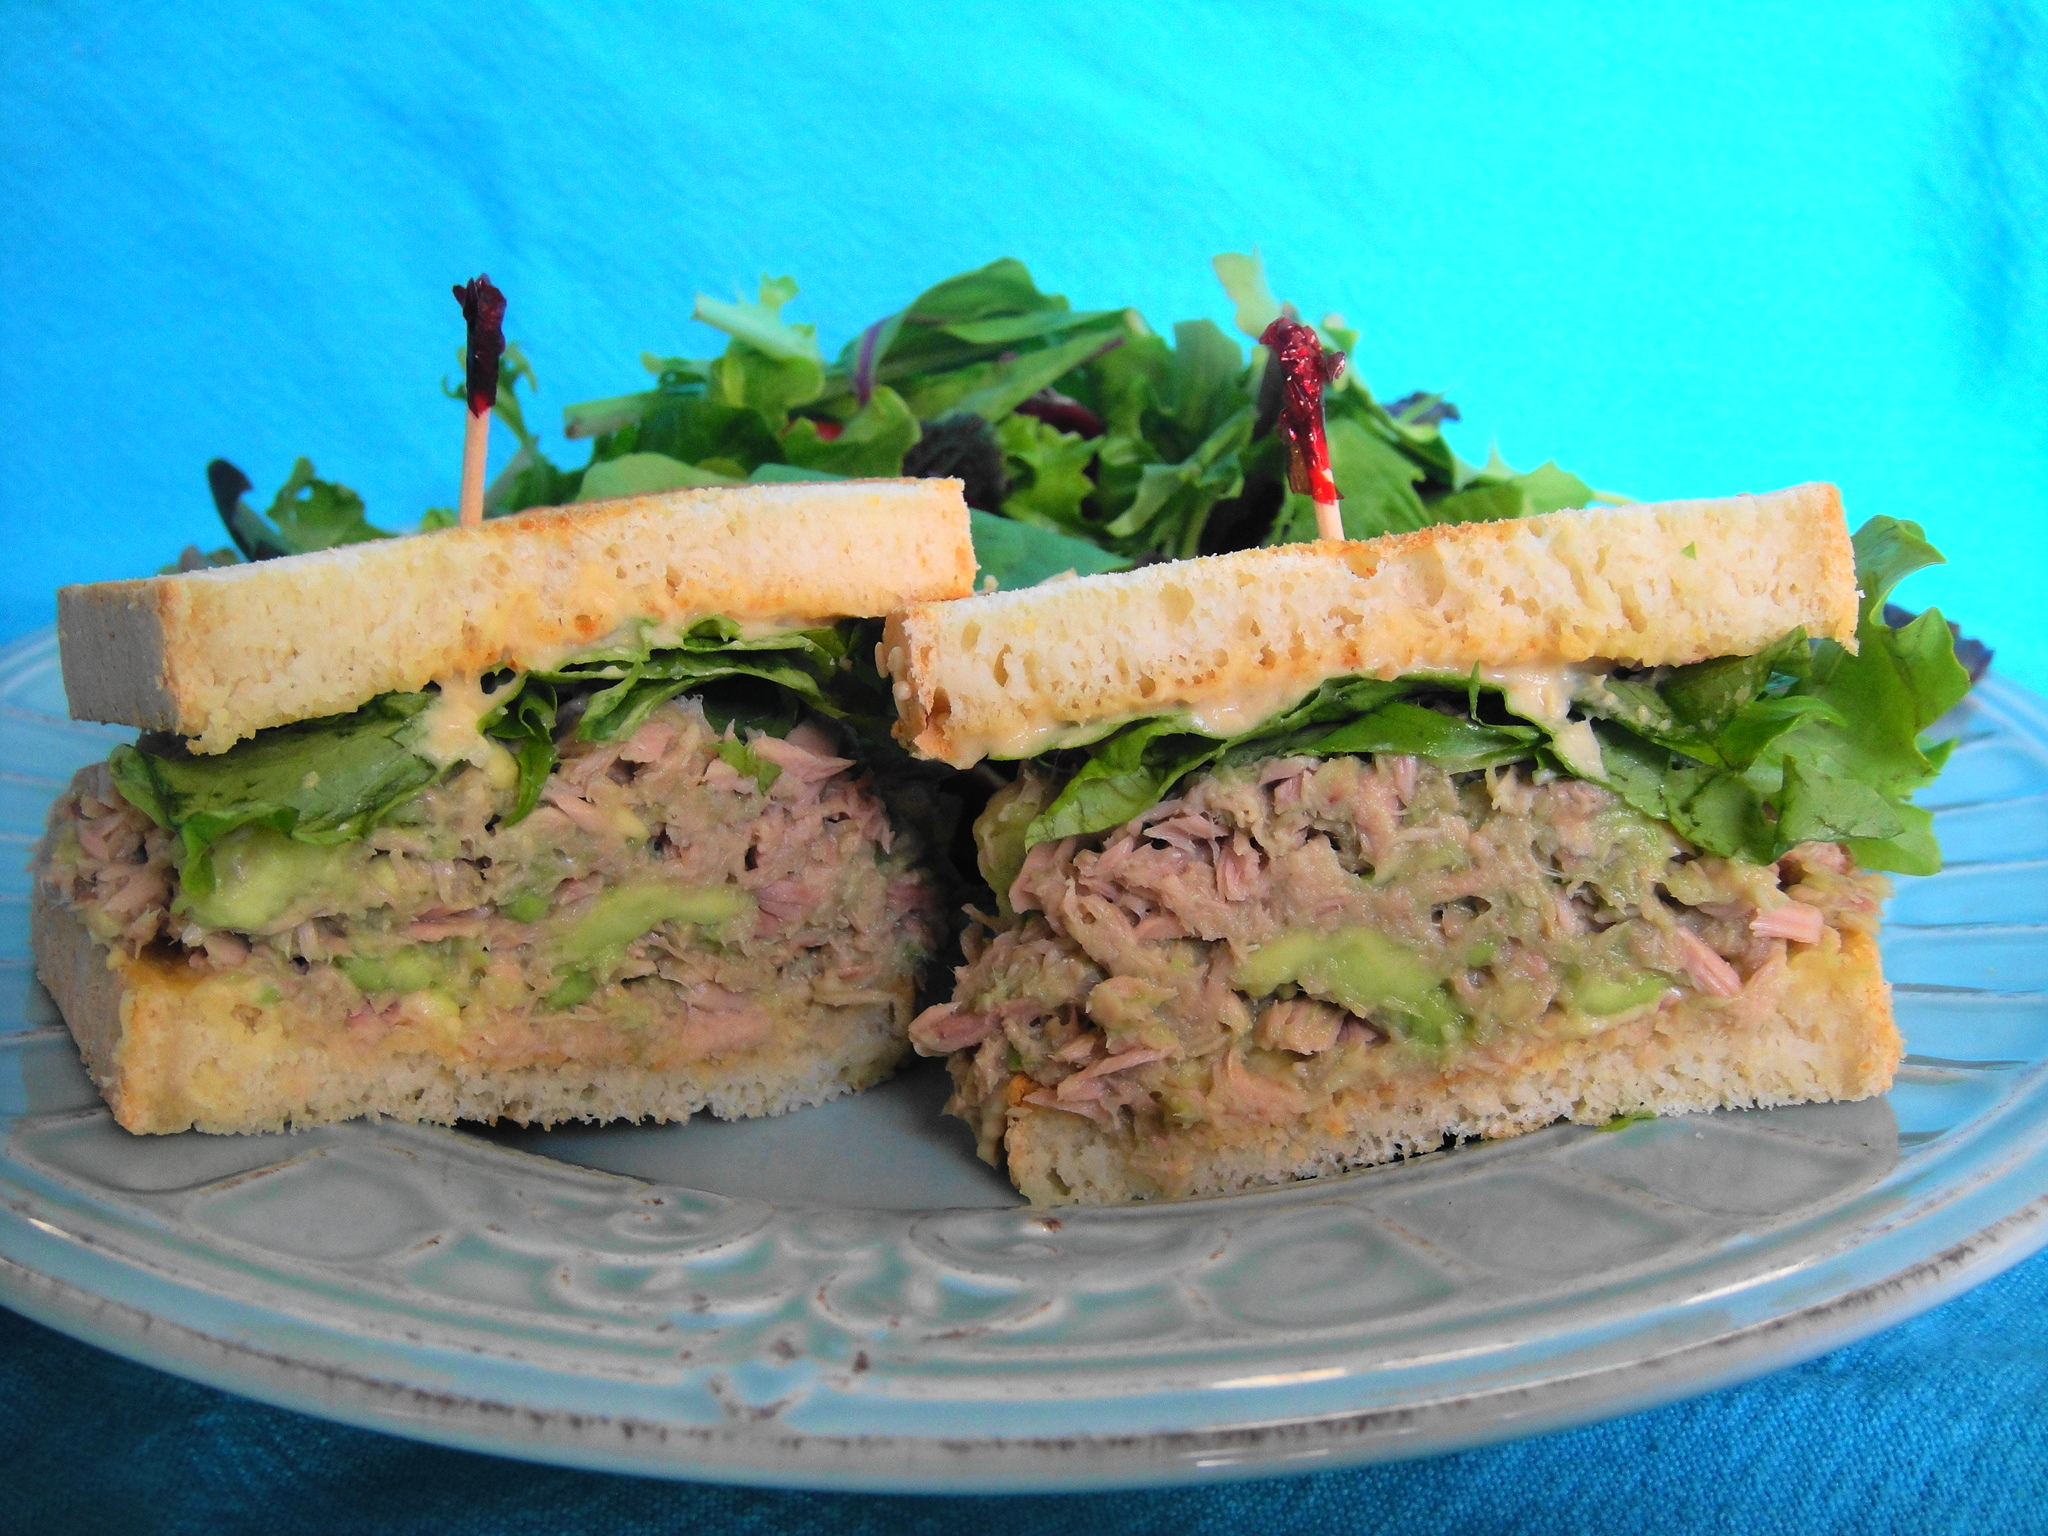 Tuna Avocado Hummus Sandwich